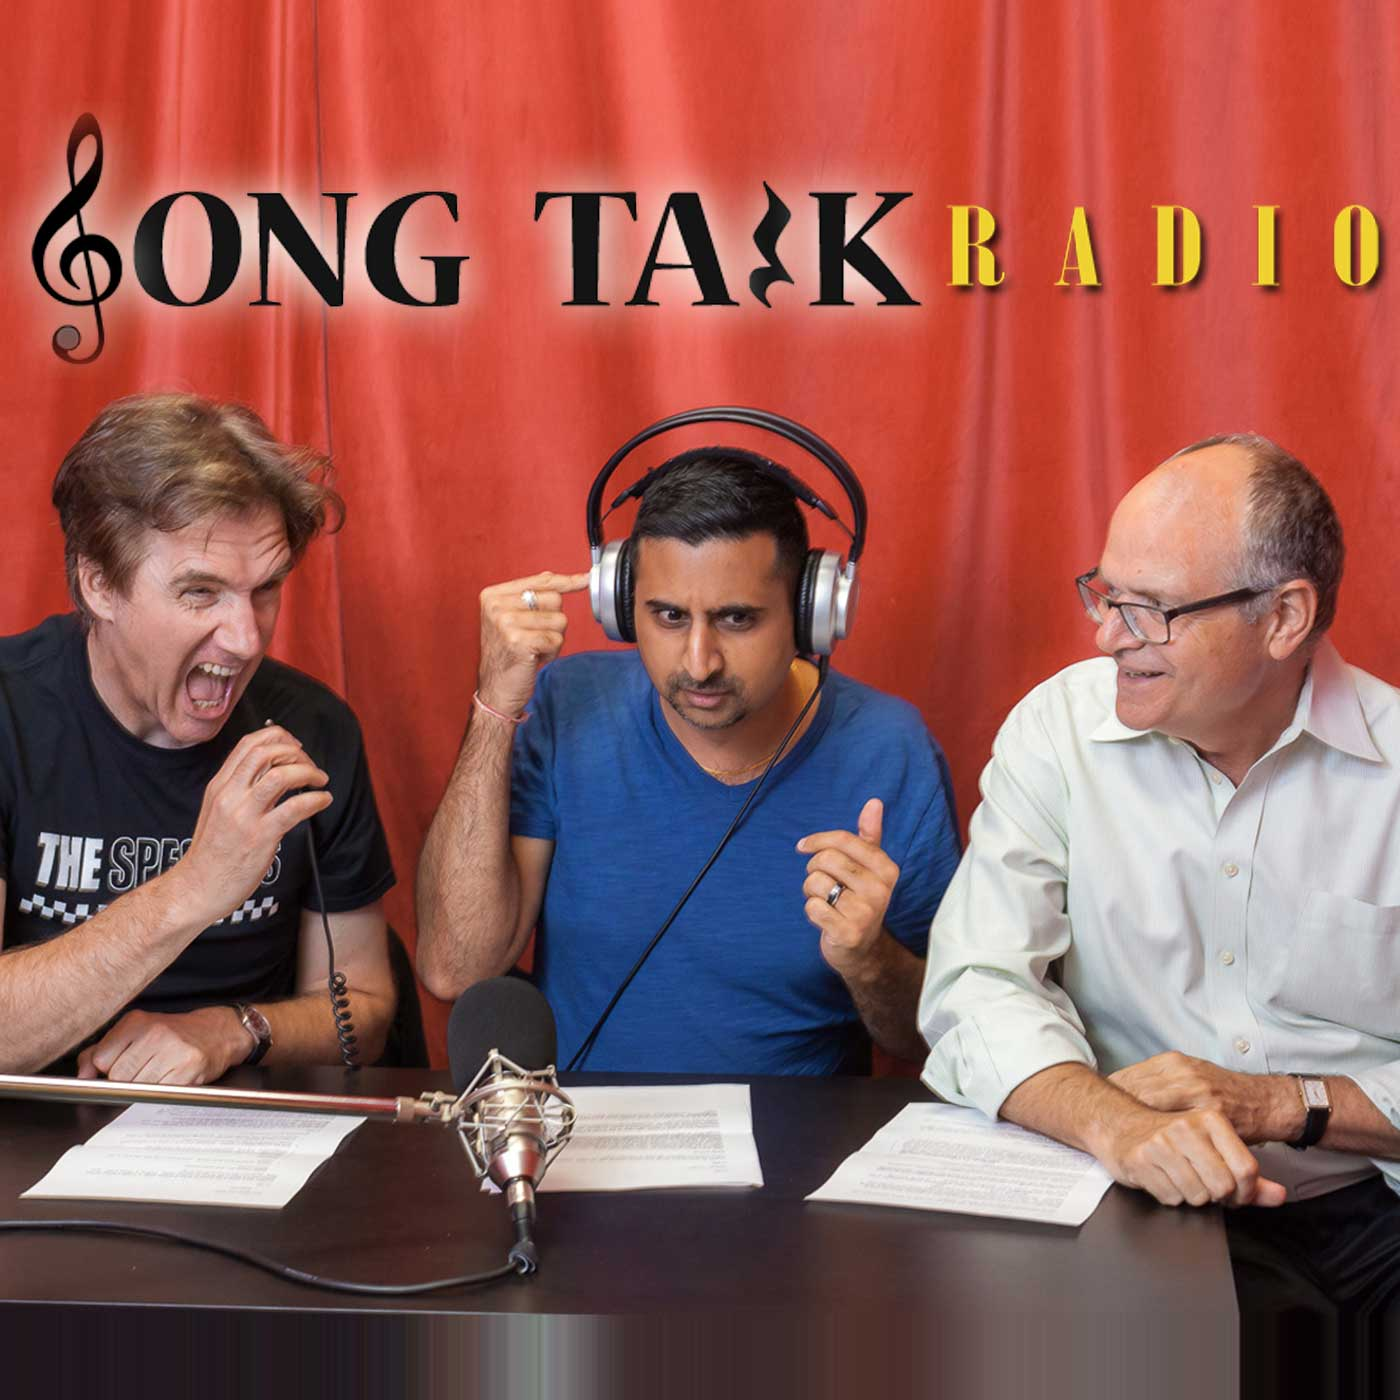 Song Talk Radio with Bruce, Neel & Phil